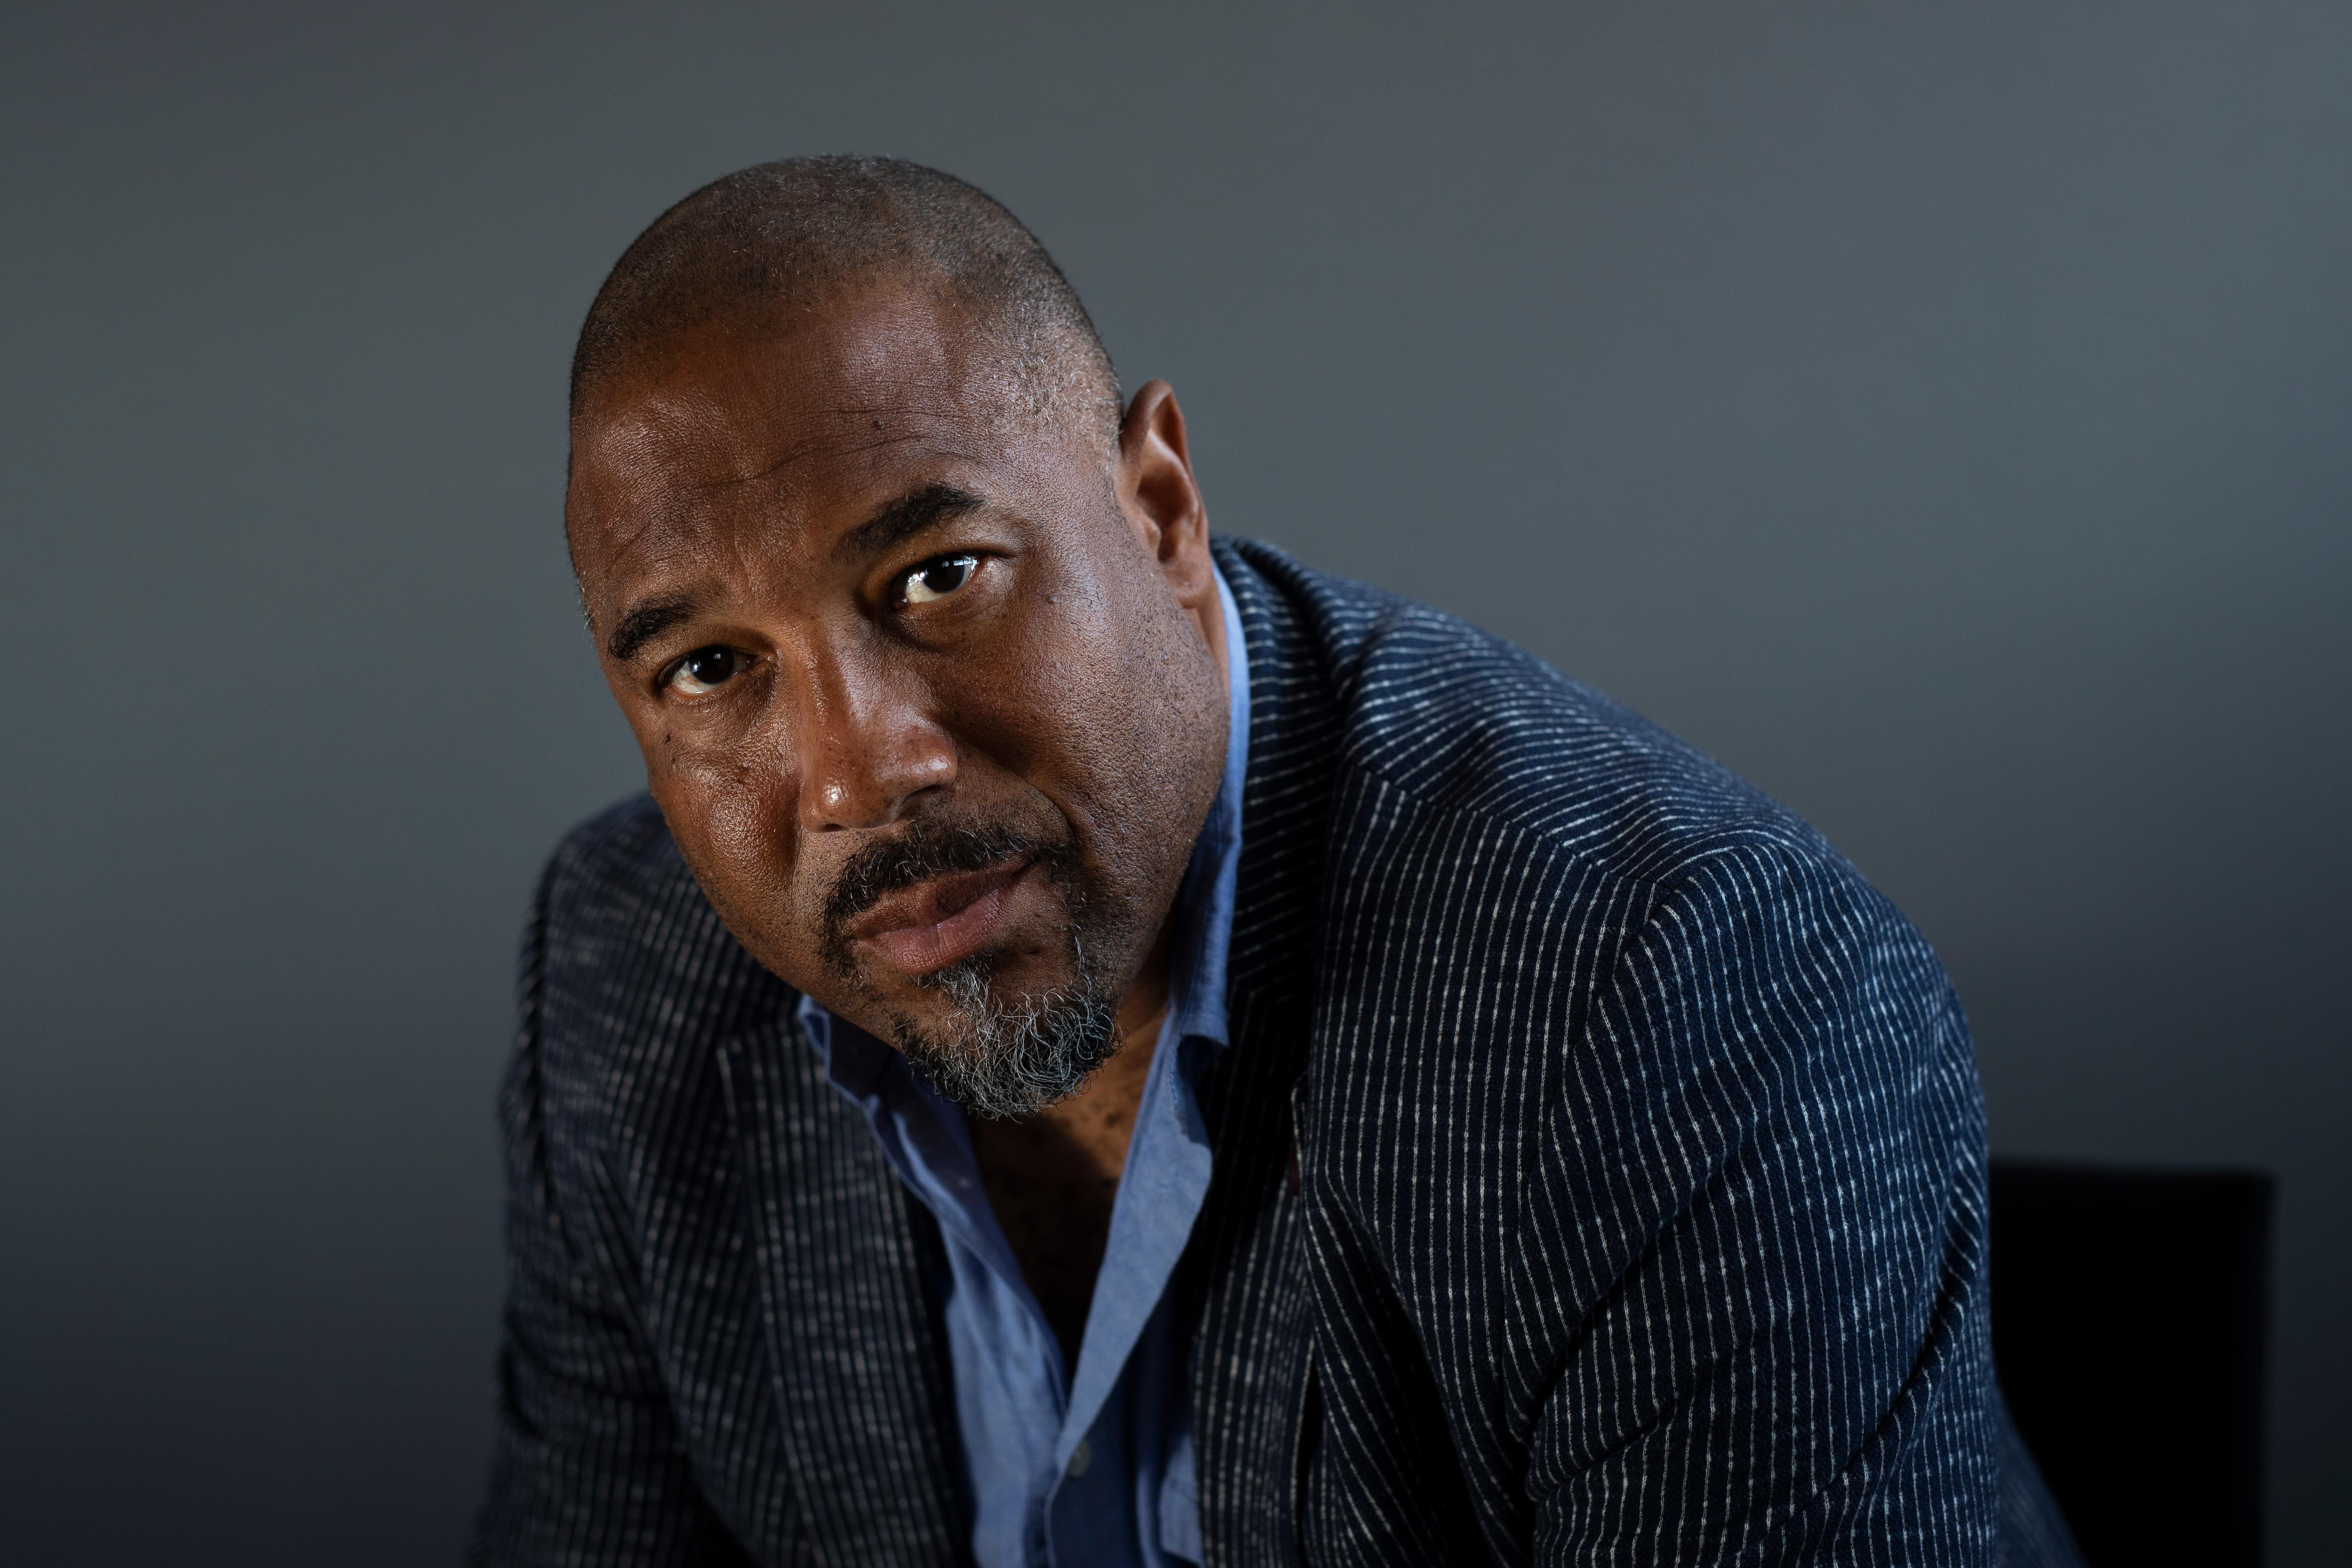 John Barnes: 'I was seen as the voice of reason on race. I haven't changed'